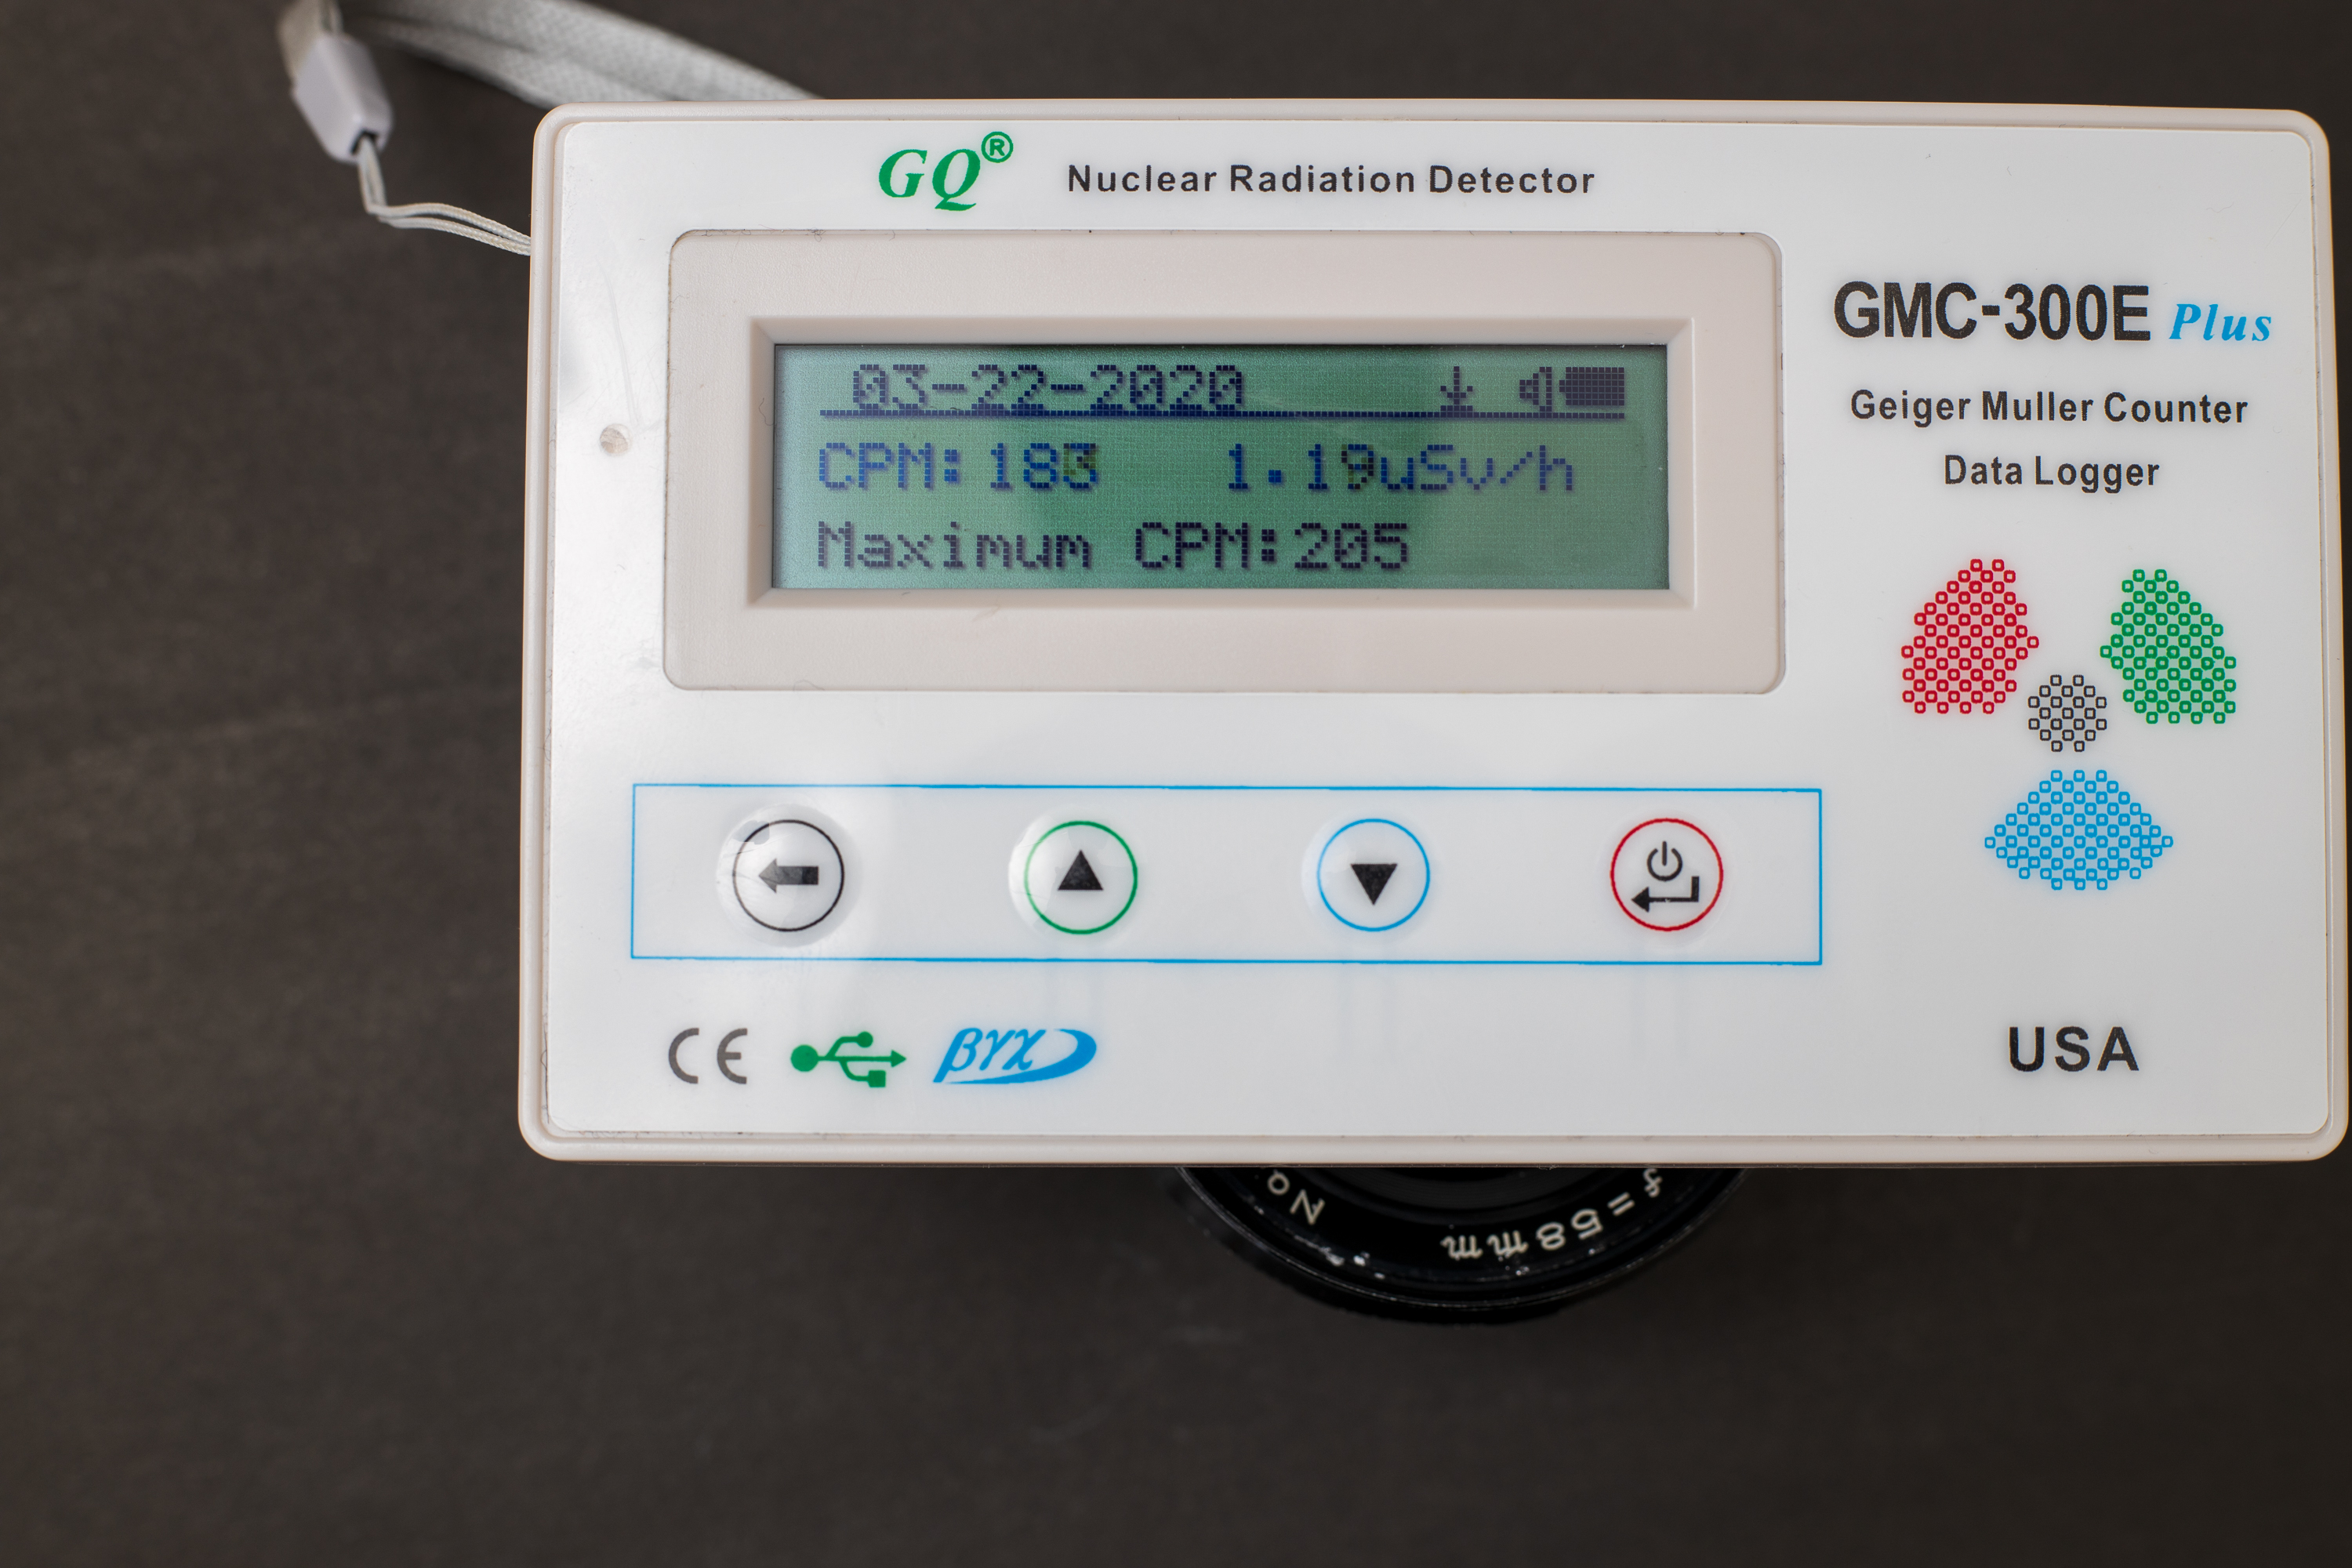 Geiger counter registering 1.19 uSv/h for front of Mamiya Sekor 58mm f1.7 M42